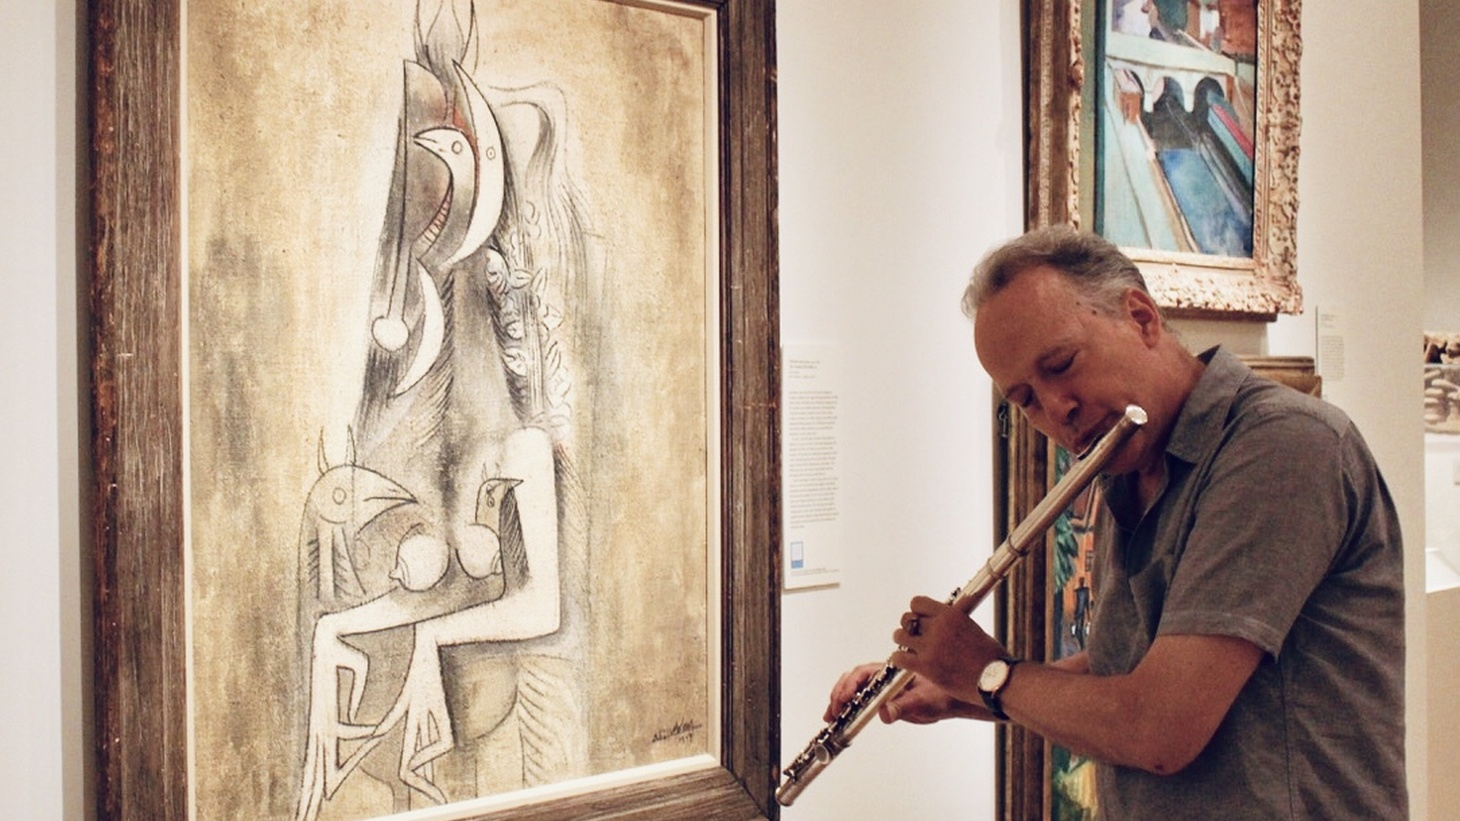 Ted Nash plays a jazz flute improvisation based on his artistic interpretation of Wilfredo Lam's The Casting of the Spell at the Santa Barbara Museum of Art.